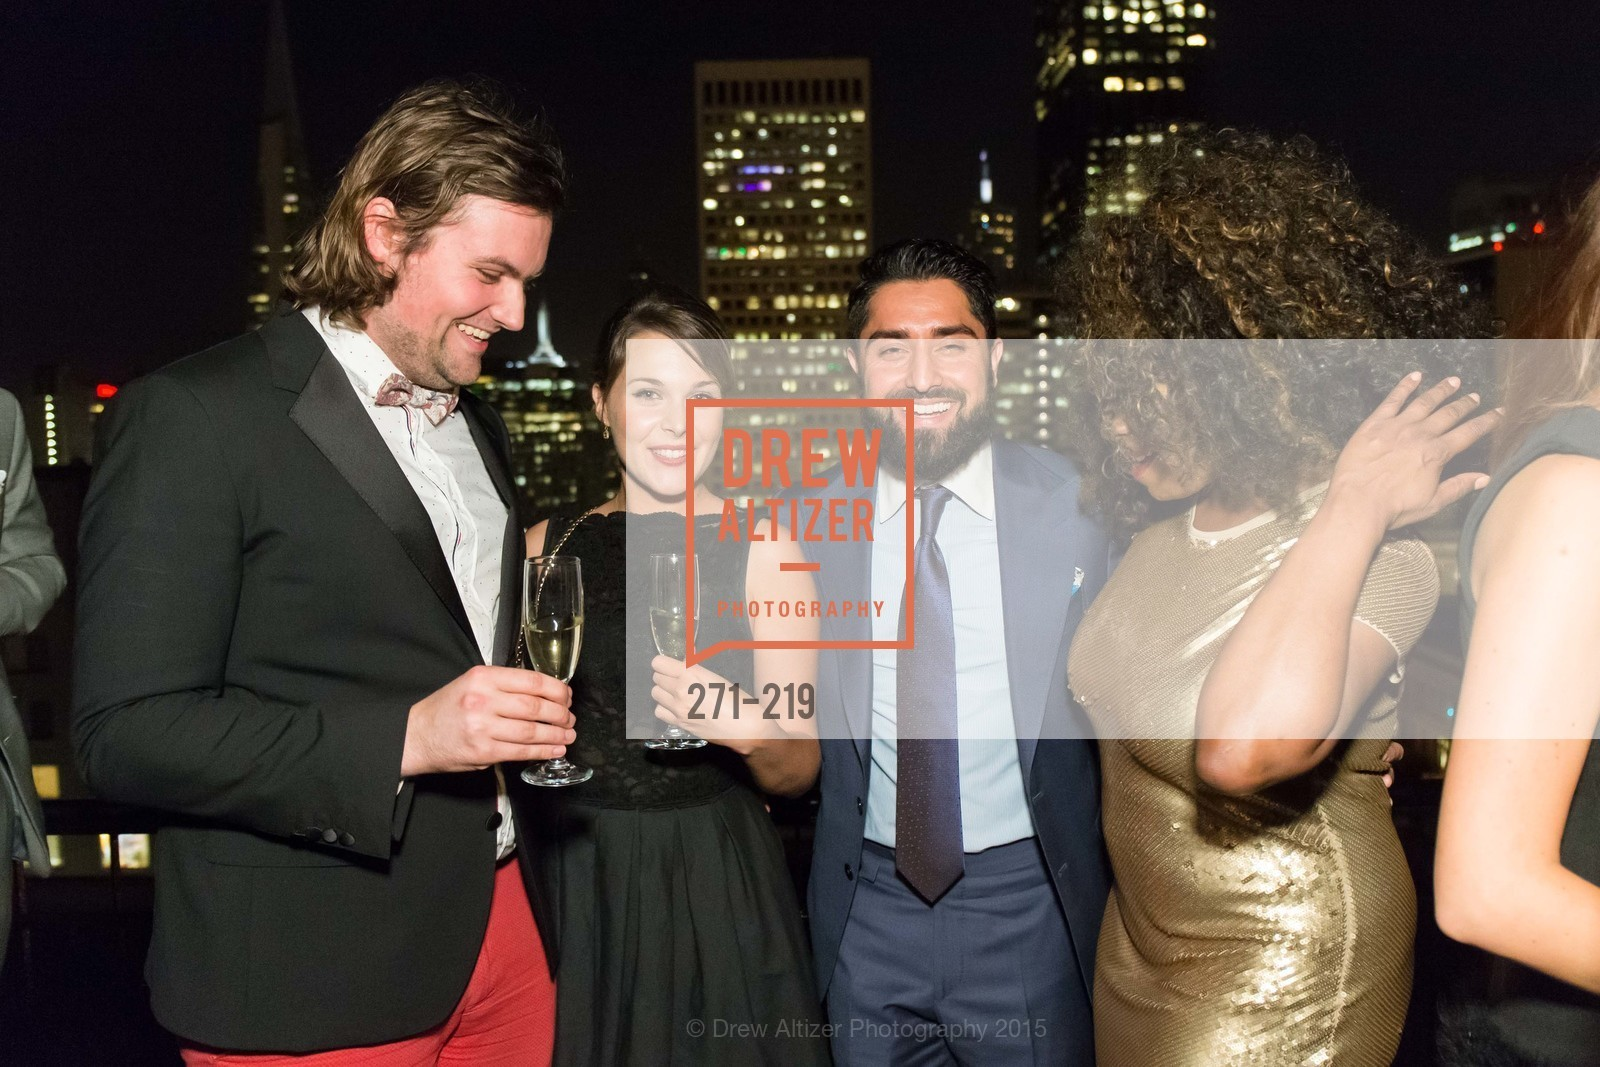 Romain Colignon, Laura Brossard, Roh Habibi, Chaundra Woods, Champagne Reception & Screening of Million Dollar Listing San Francisco, University Club. 800 Powell St, August 5th, 2015,Drew Altizer, Drew Altizer Photography, full-service agency, private events, San Francisco photographer, photographer california